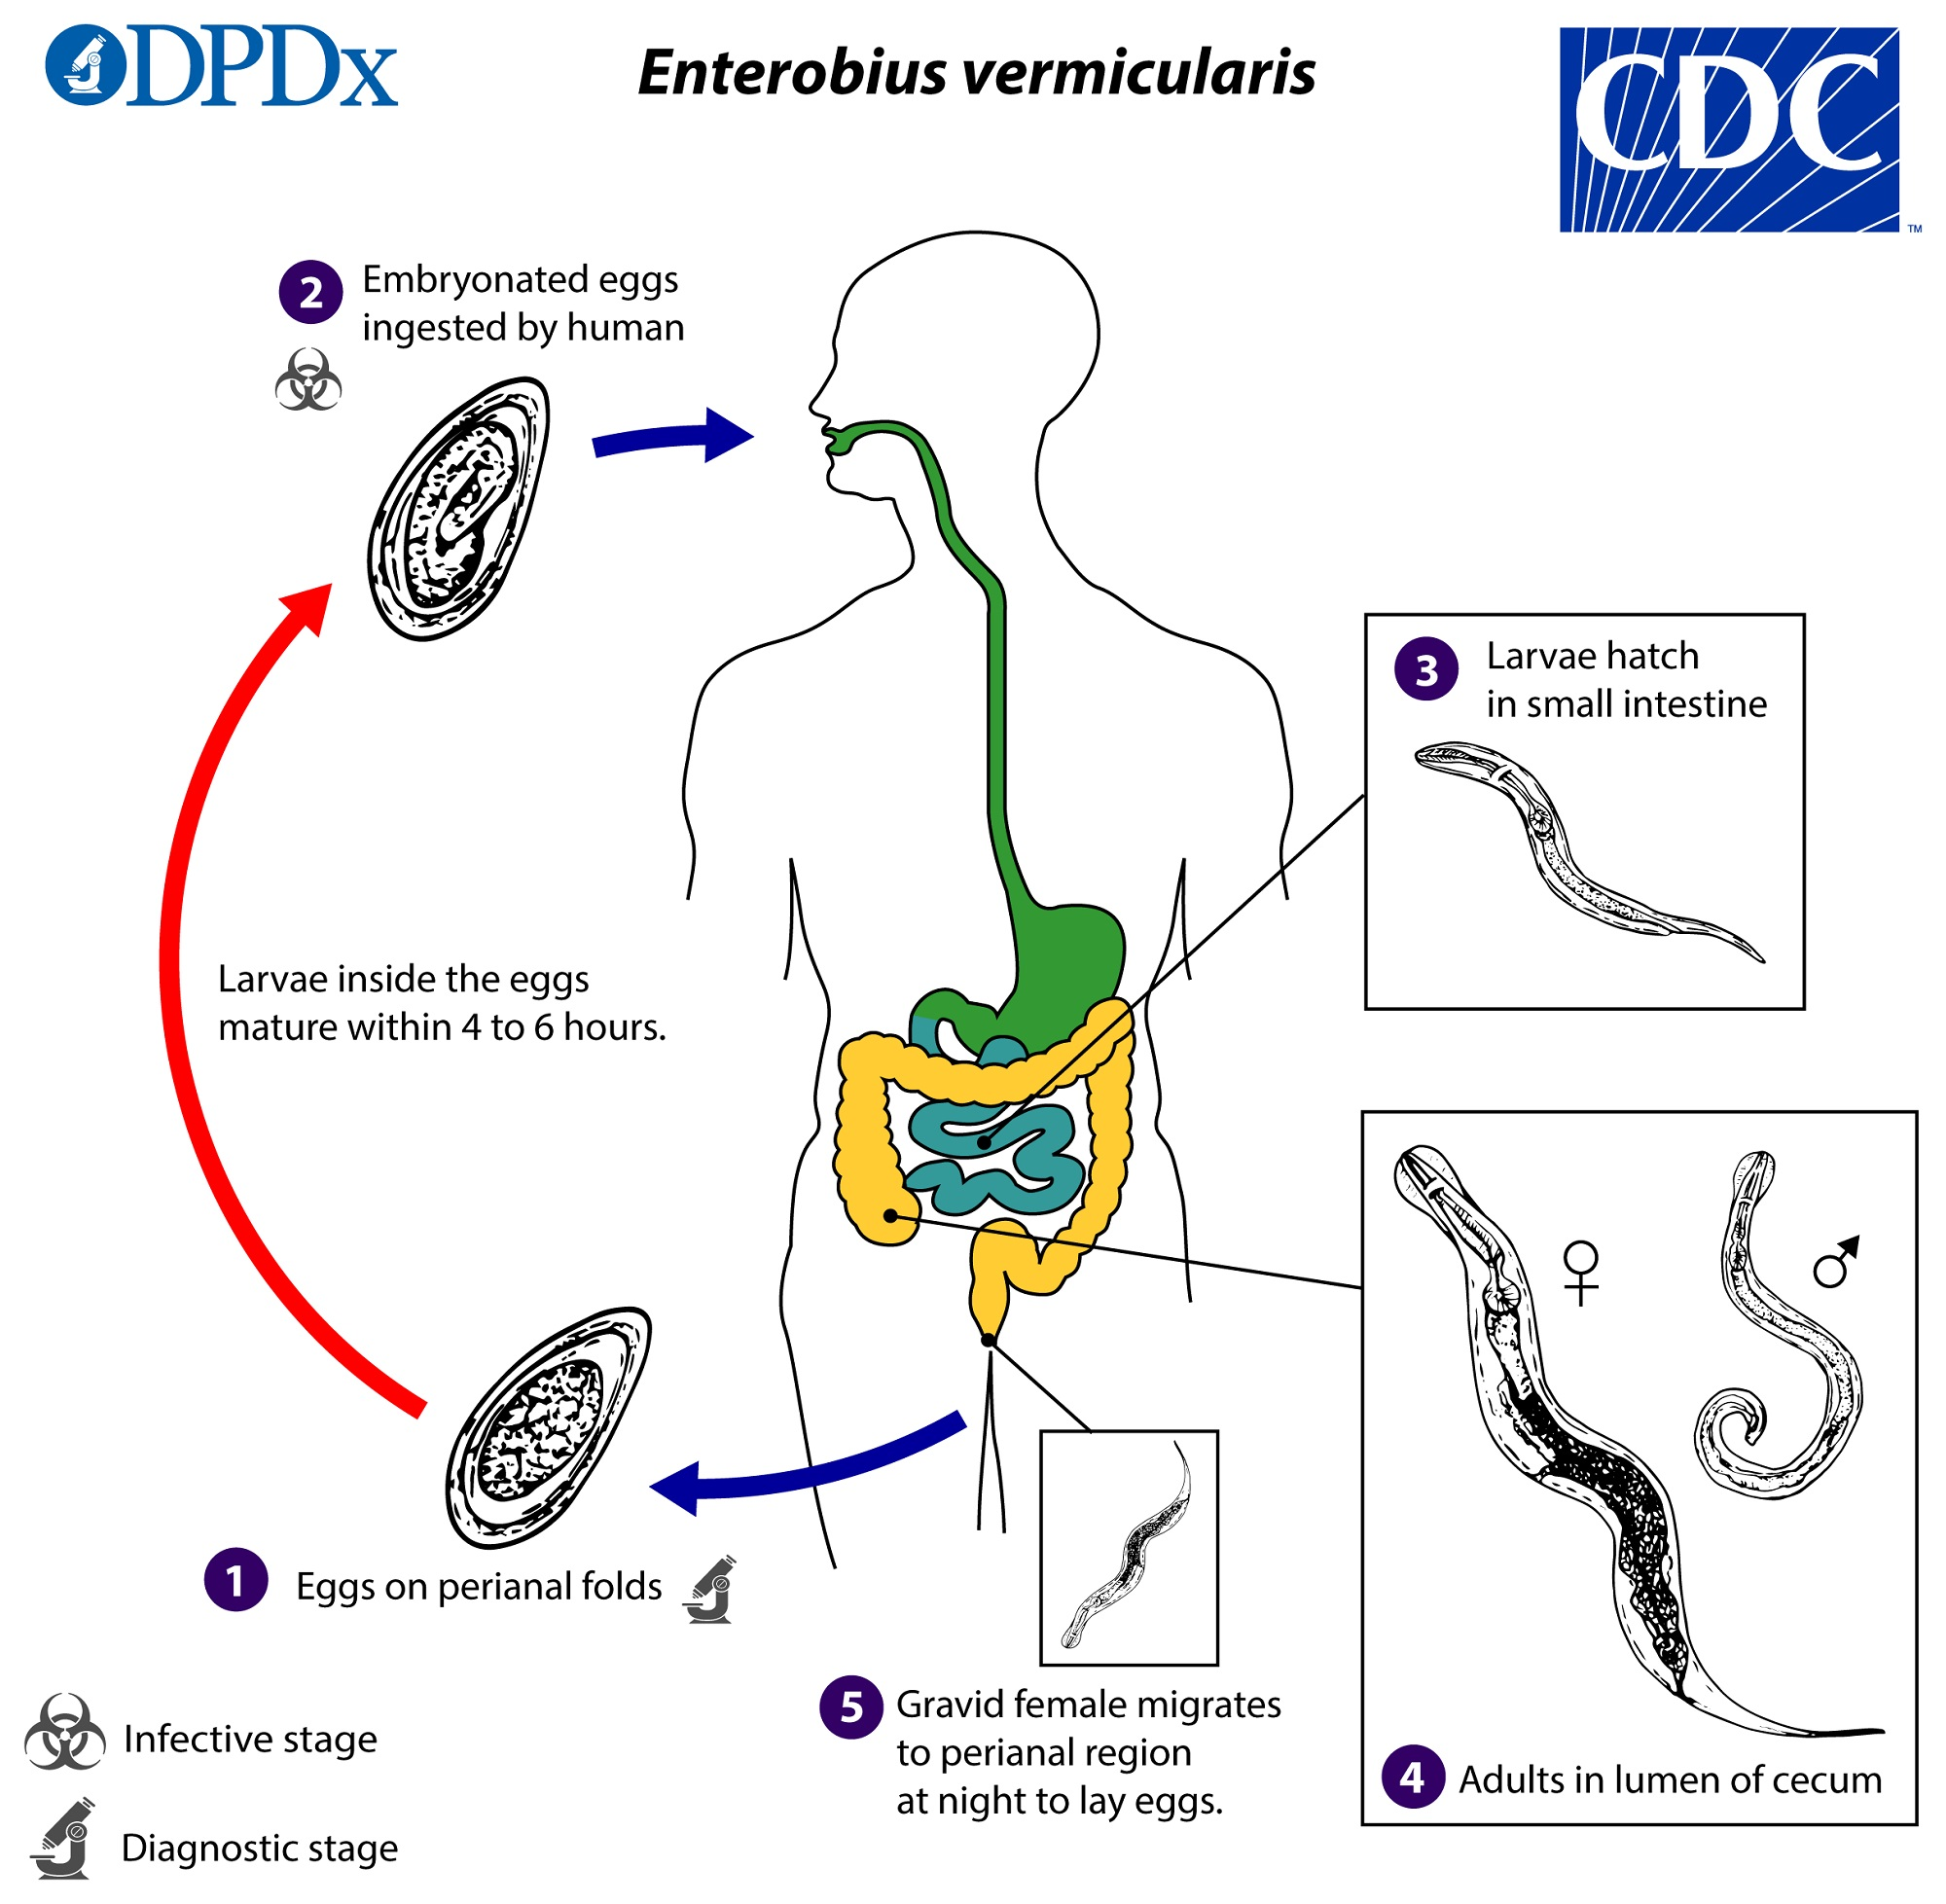 life cycle of enterobius vermicularis with diagram